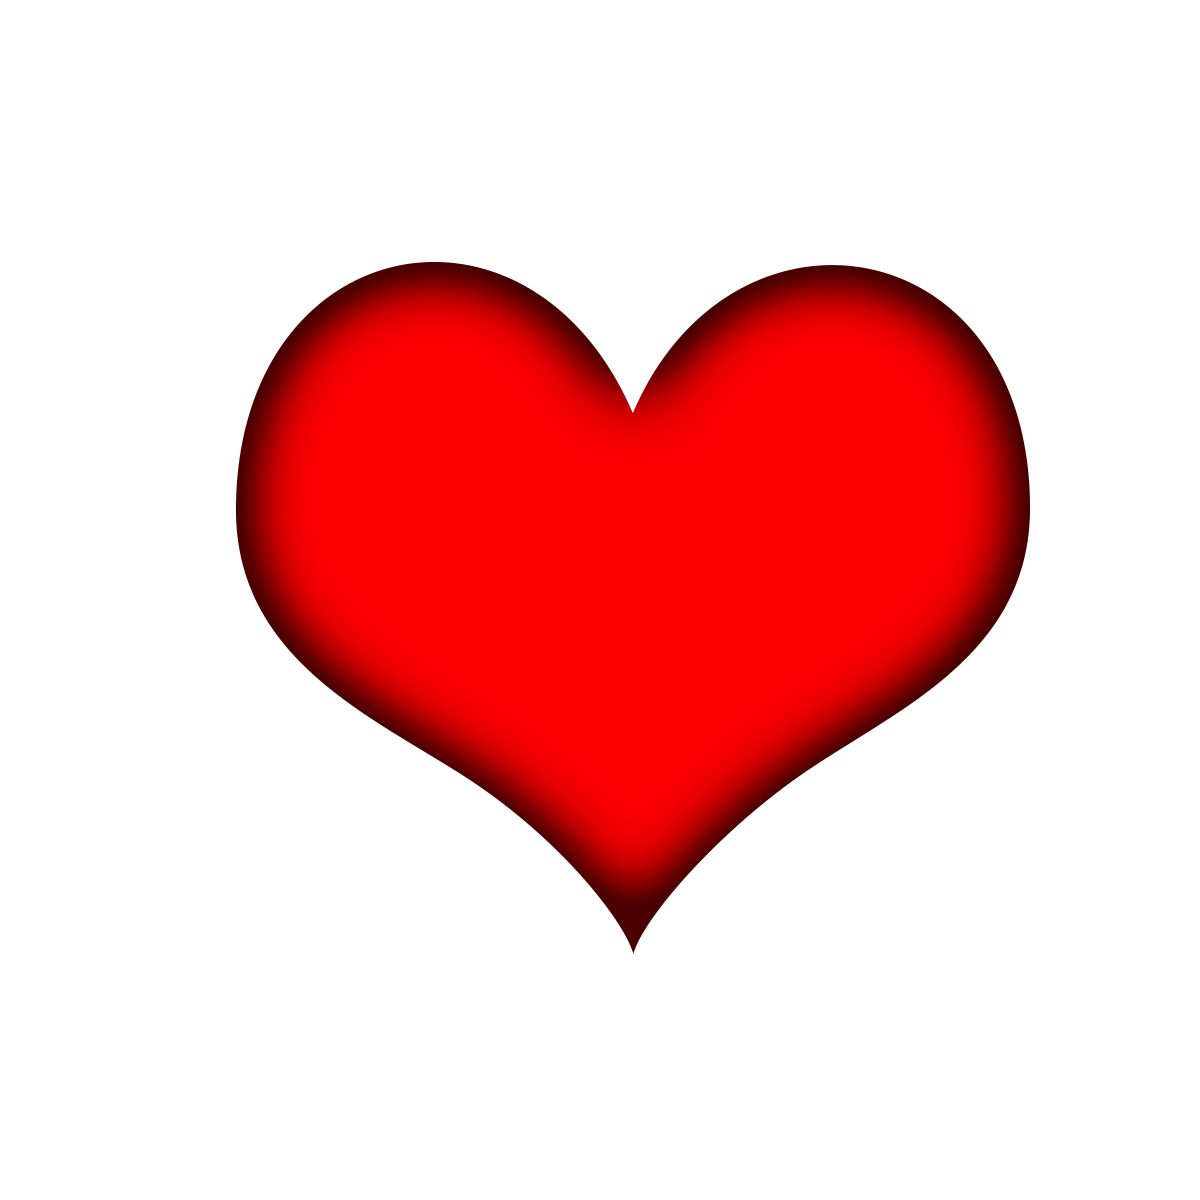 Free Download Stylish 3d Valentine Heart Png Red Color Transparent Background Image This Is Amazing Red 3d Heart Png Transp Red Images Valentine Heart Love Png